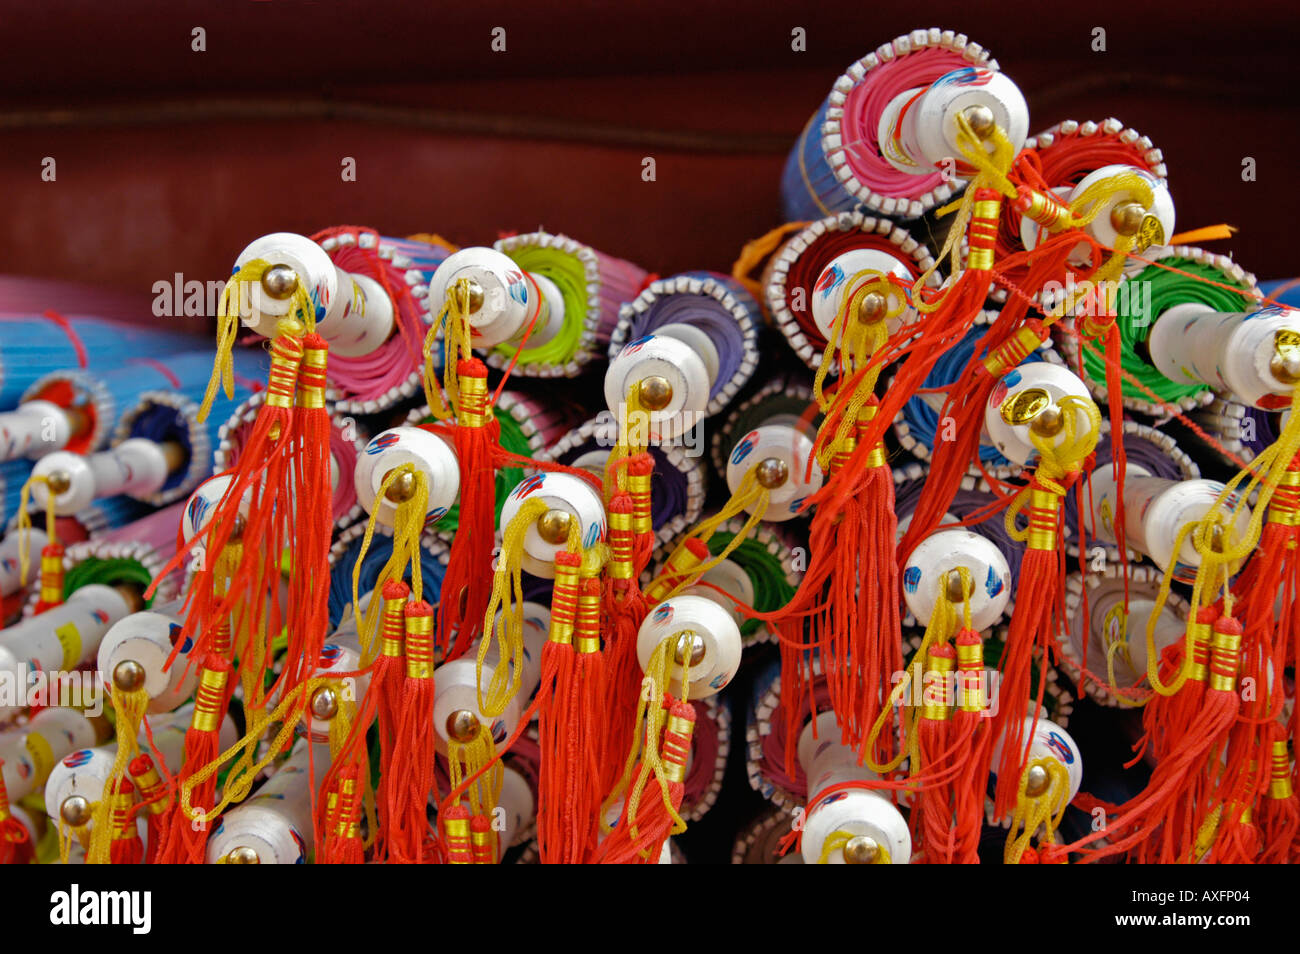 A row of closed Chinese silk umbrellas - Stock Image